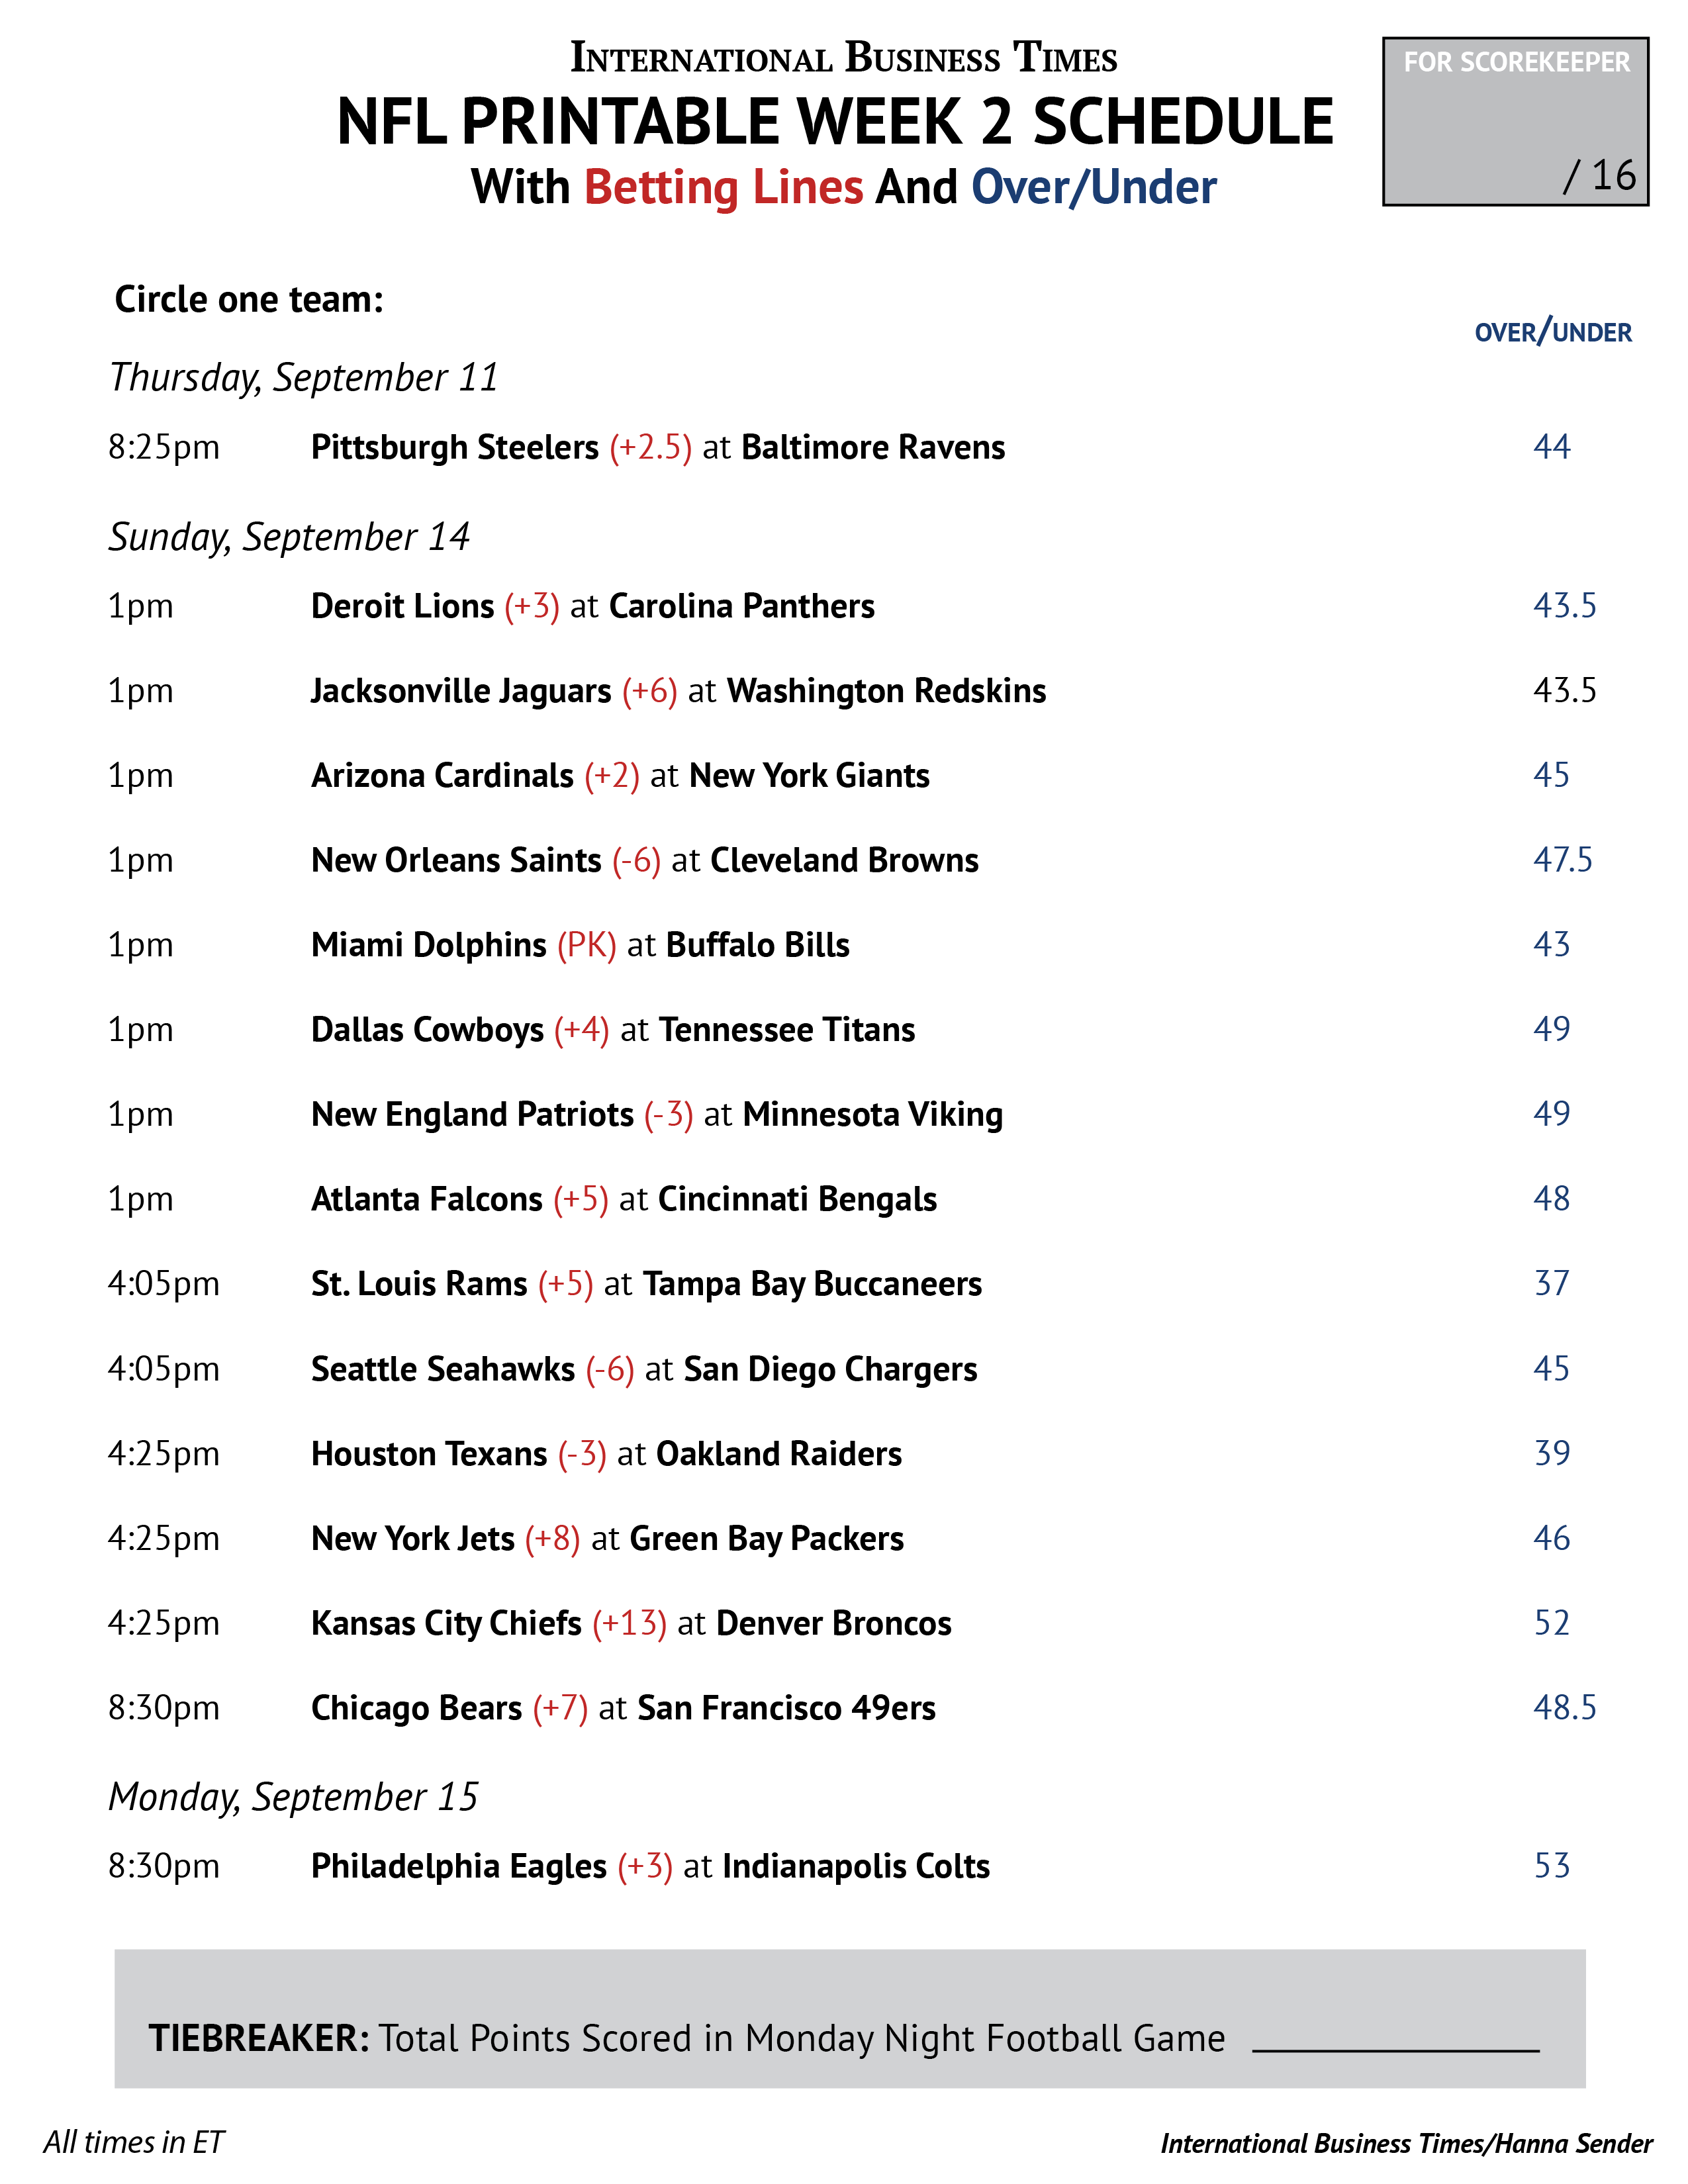 graphic relating to Printable Nfl Week 2 Schedule called NFL Business Pool 2014: Printable 7 days 2 Agenda With Betting